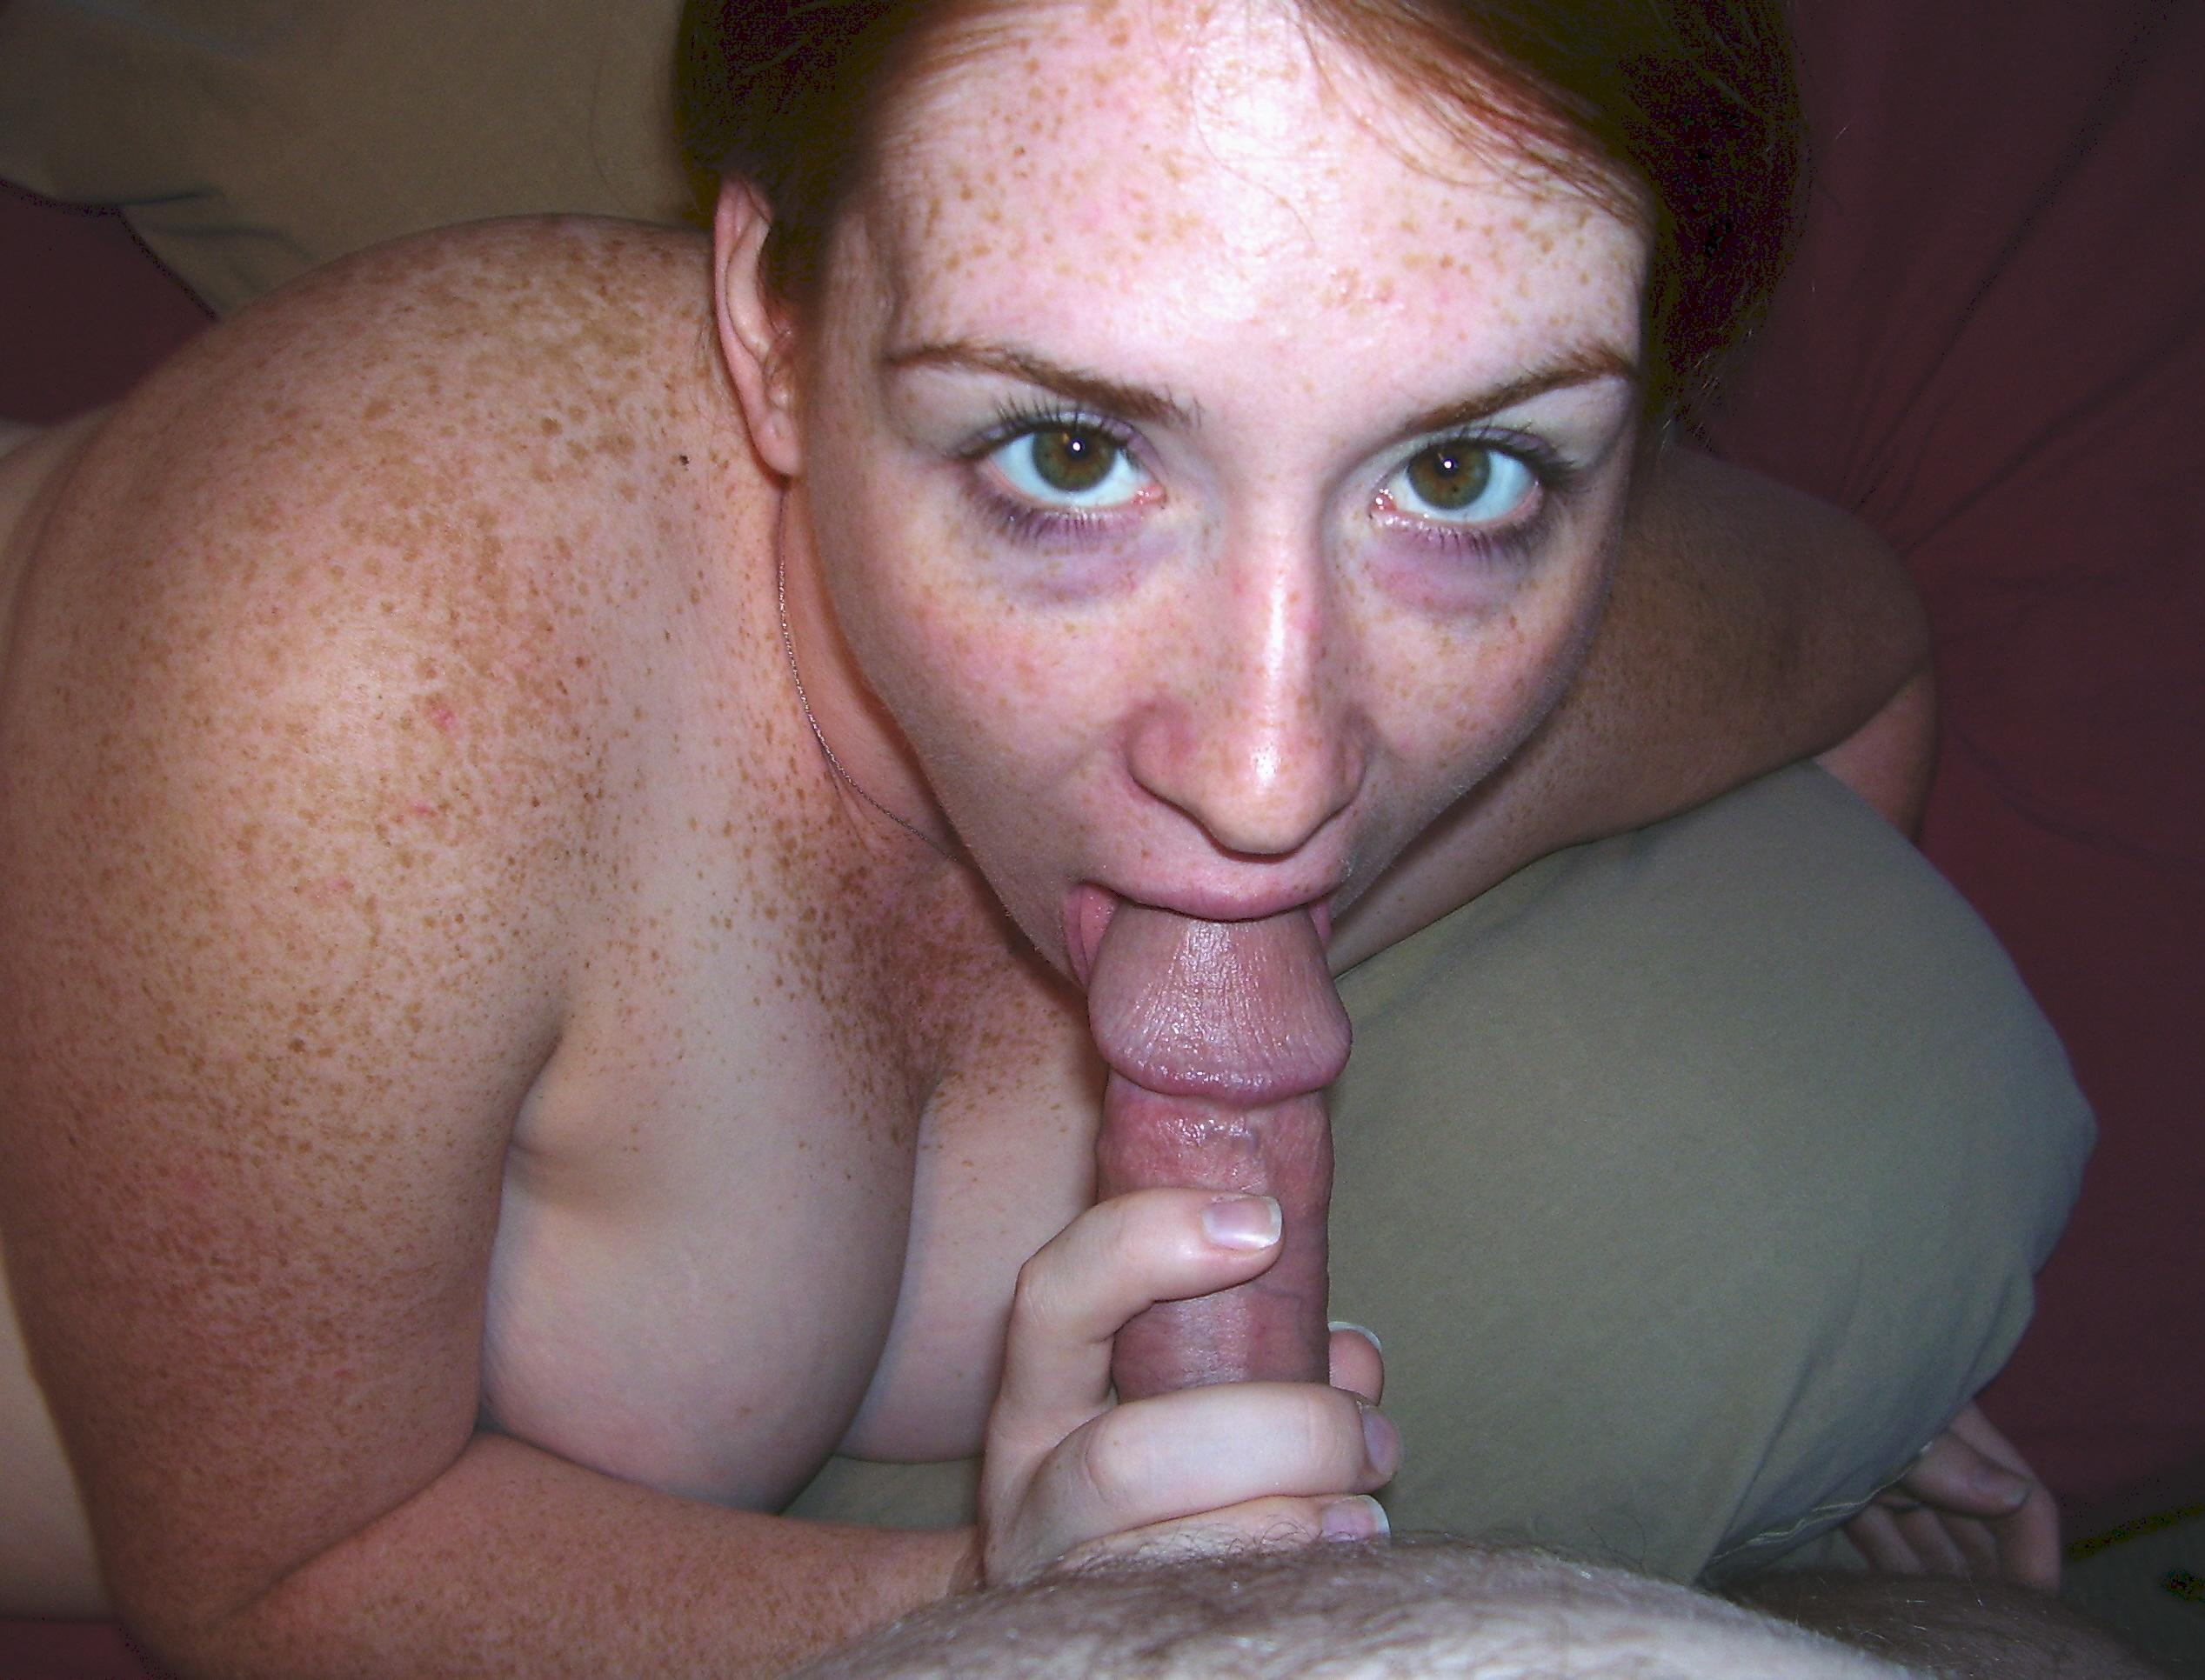 Freckles and blowjob